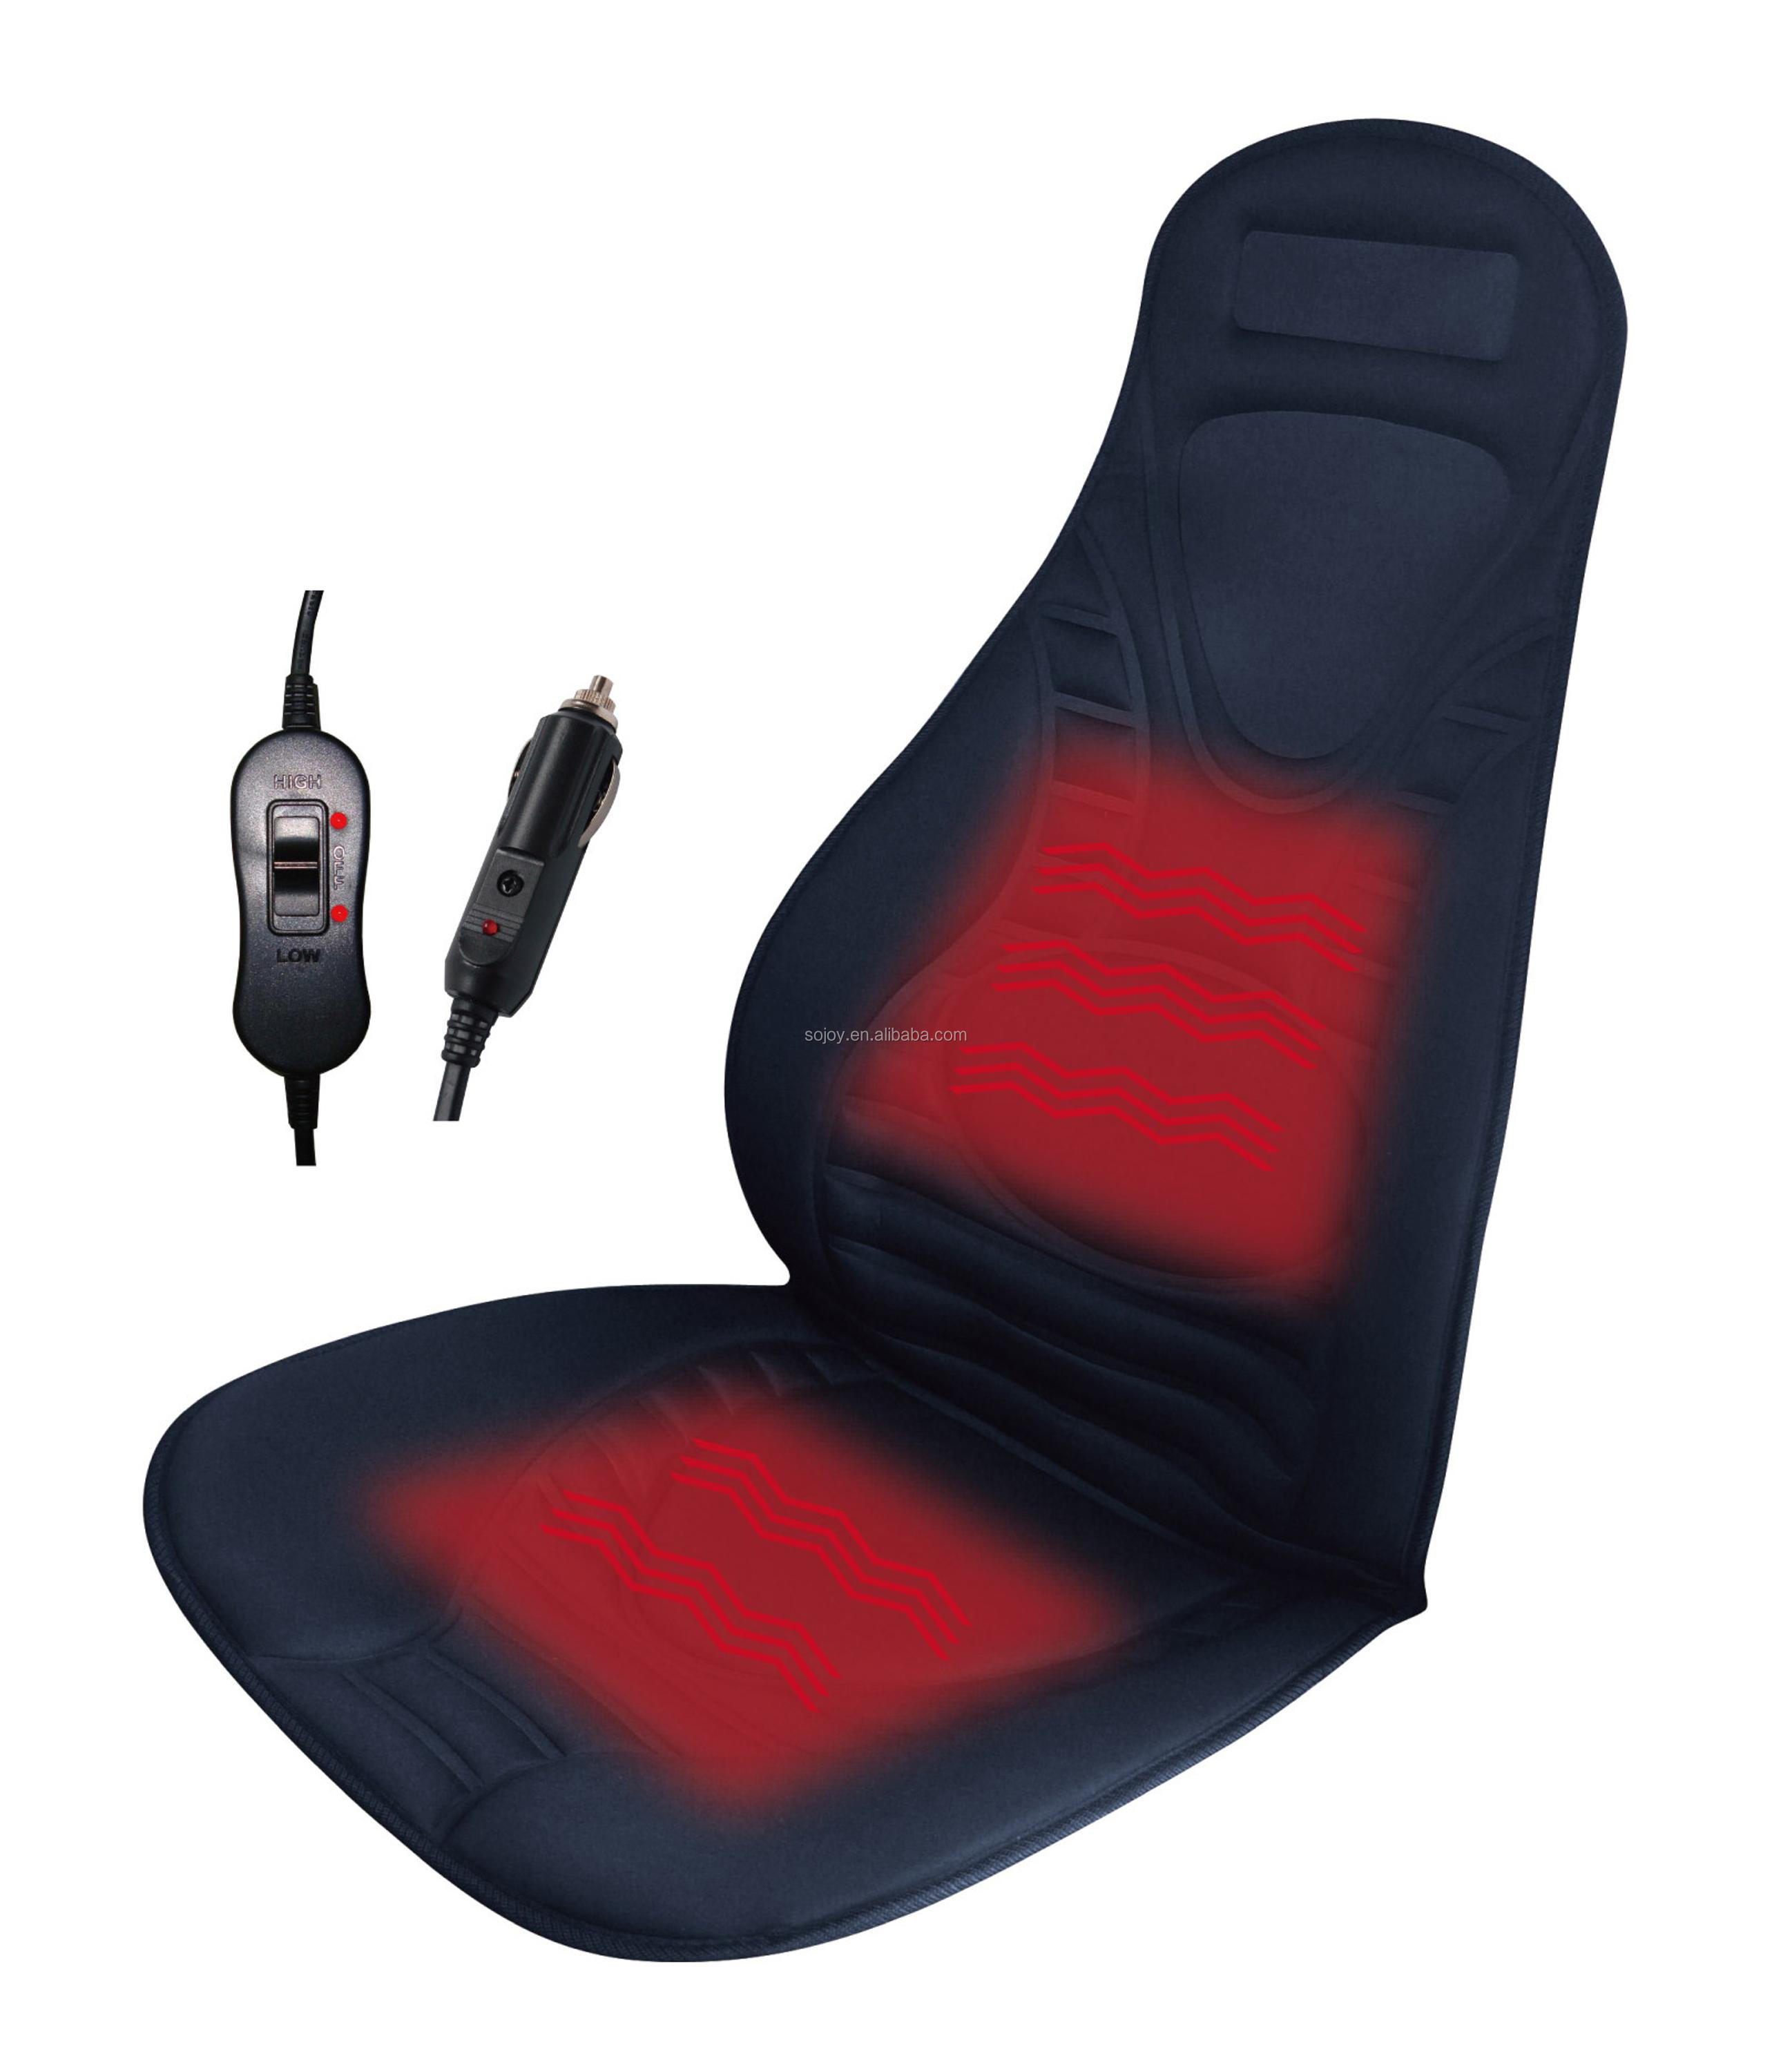 12V Electric Car Seat Heating Cushion